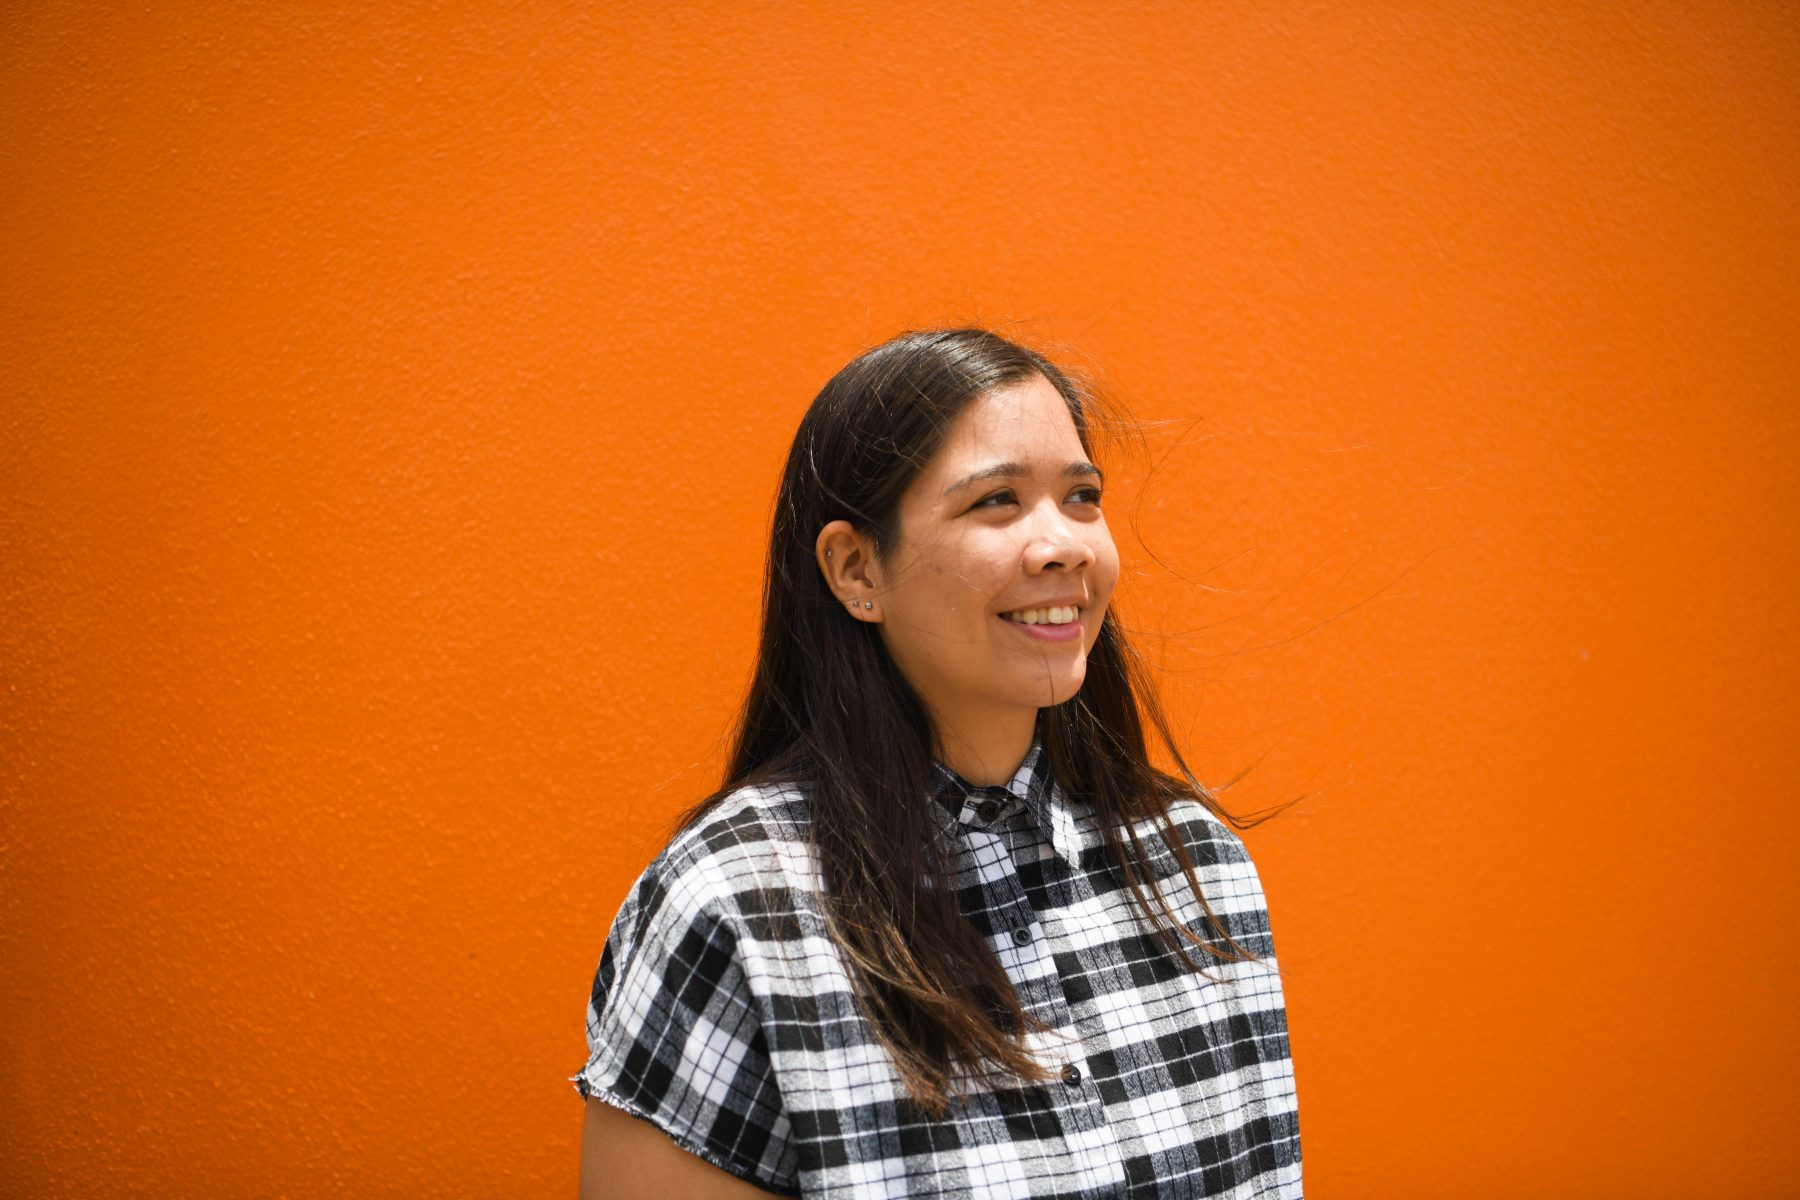 A photogrpah of Kaya standing by a bright orange wall. They have a checkered shirt on and they are smiling.